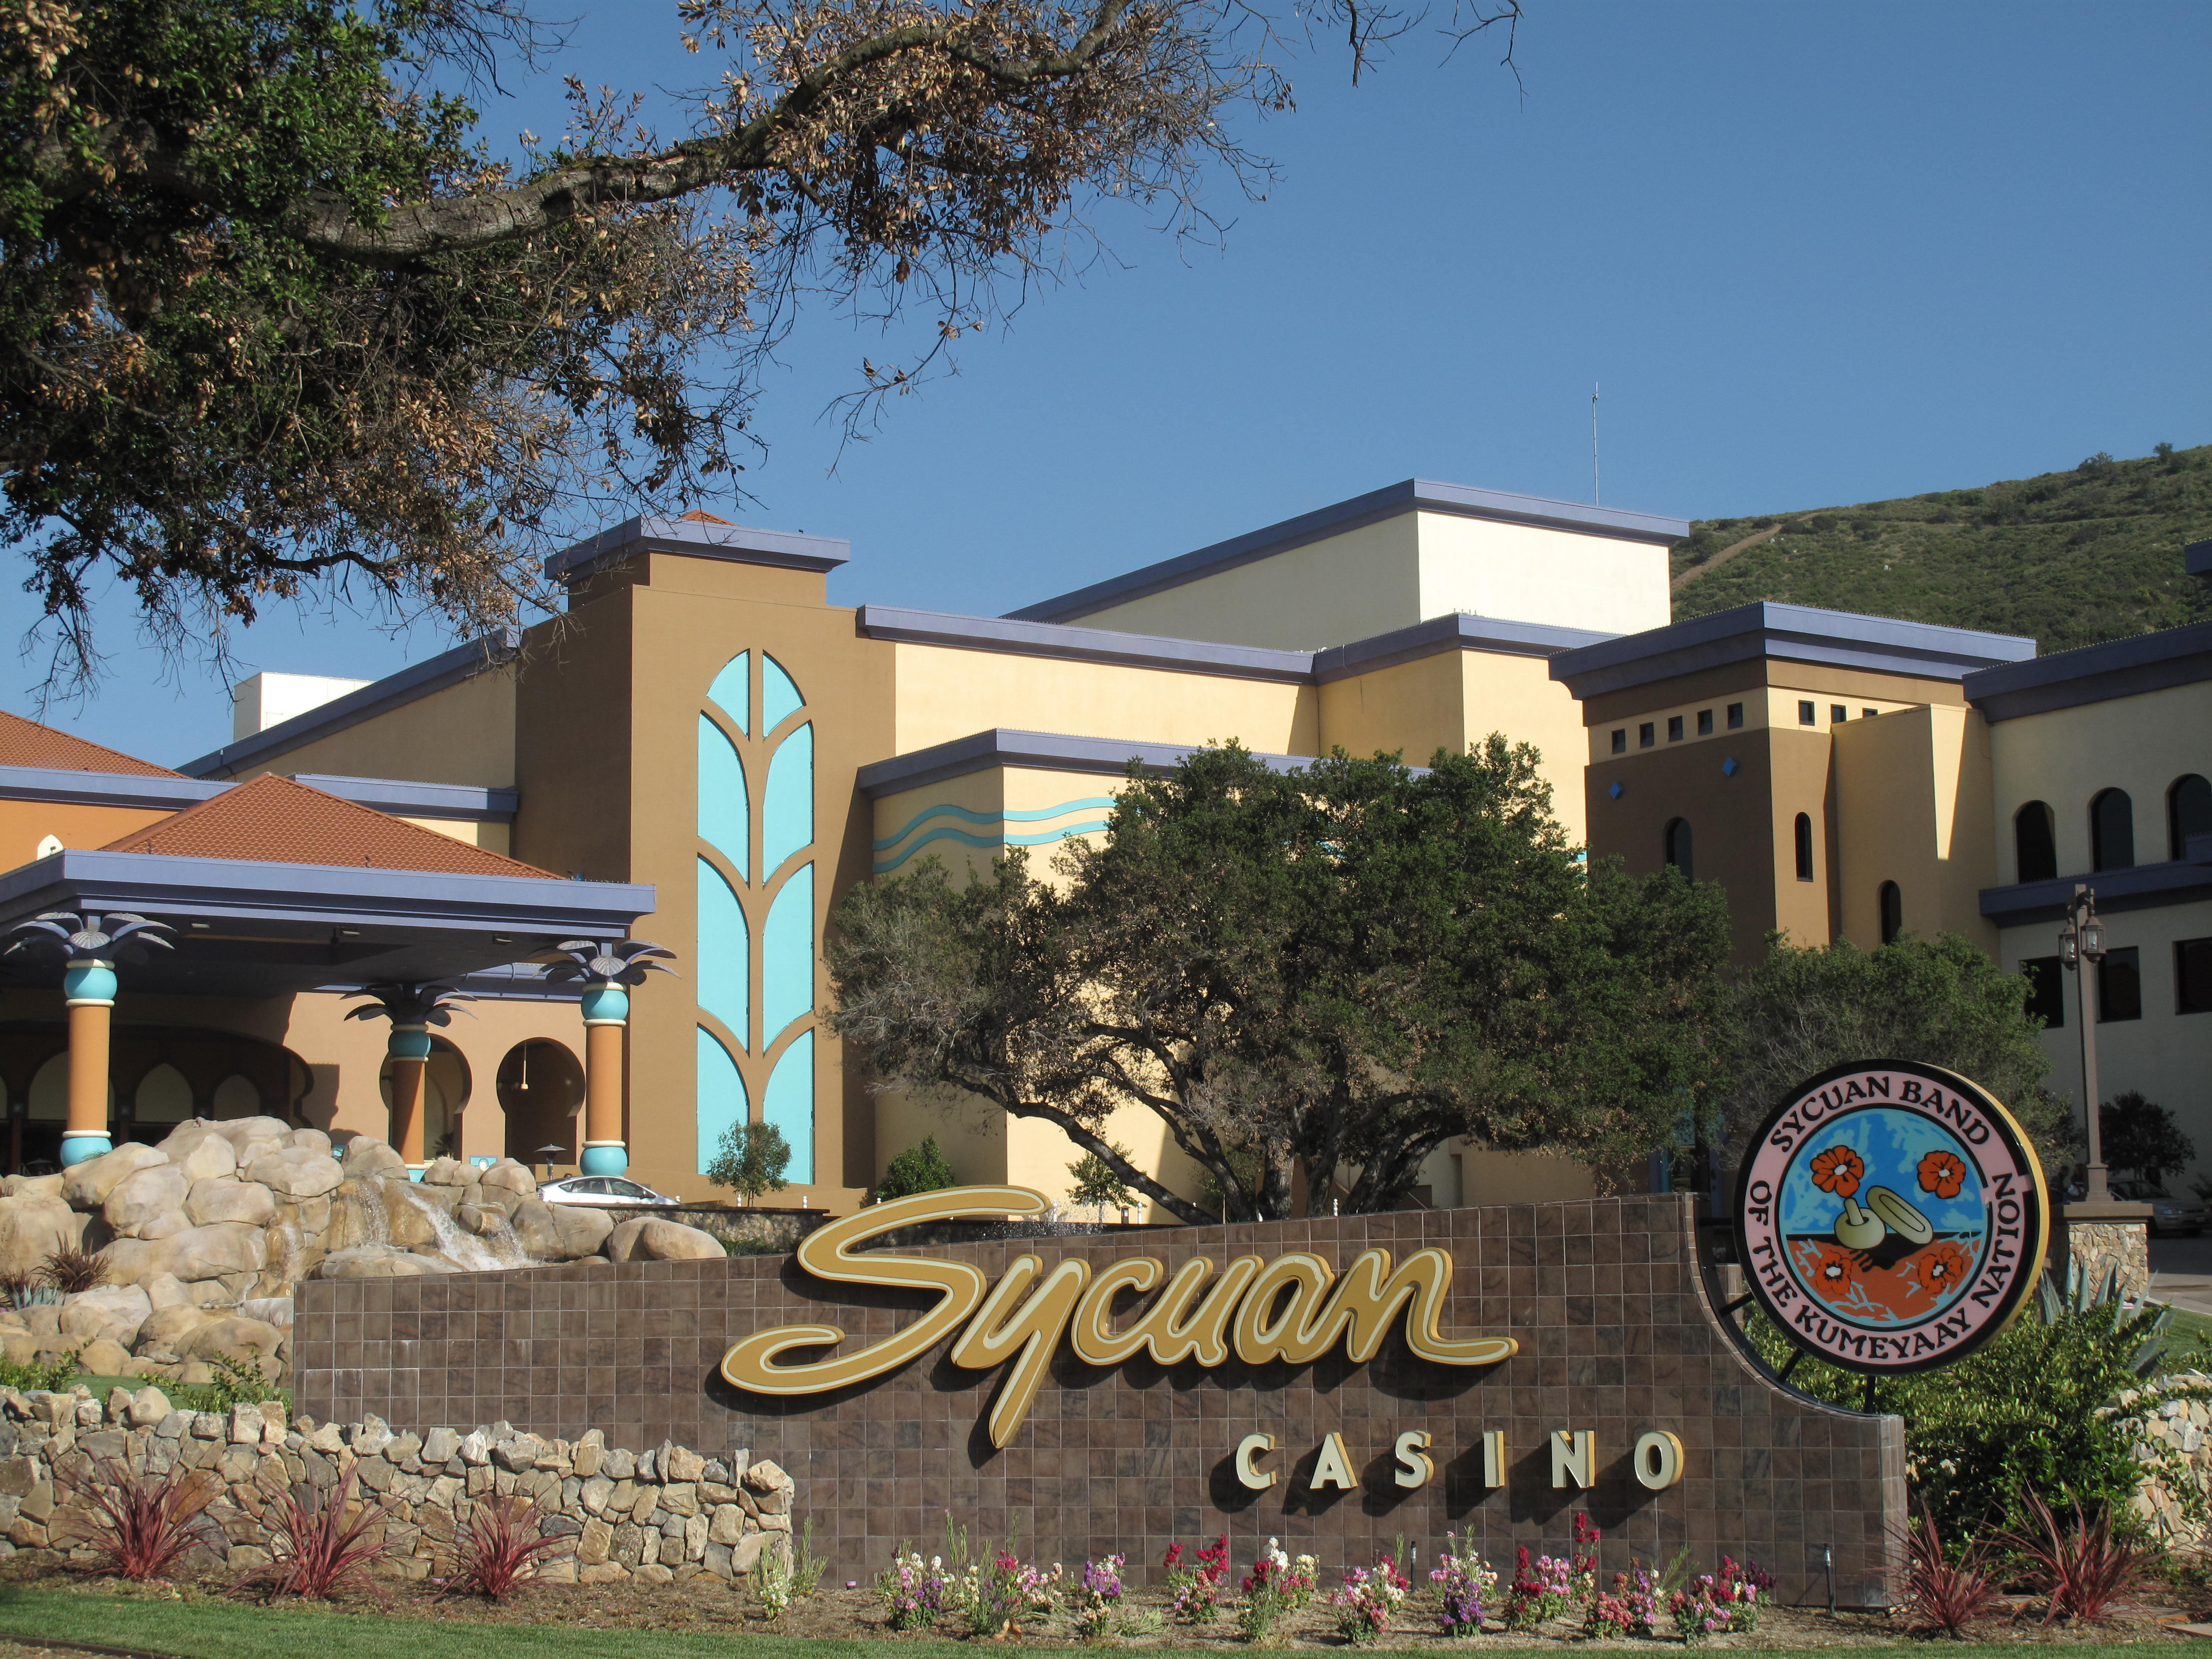 Sycuan casino san diego ca atlantis lost city movie shuttle casino greek